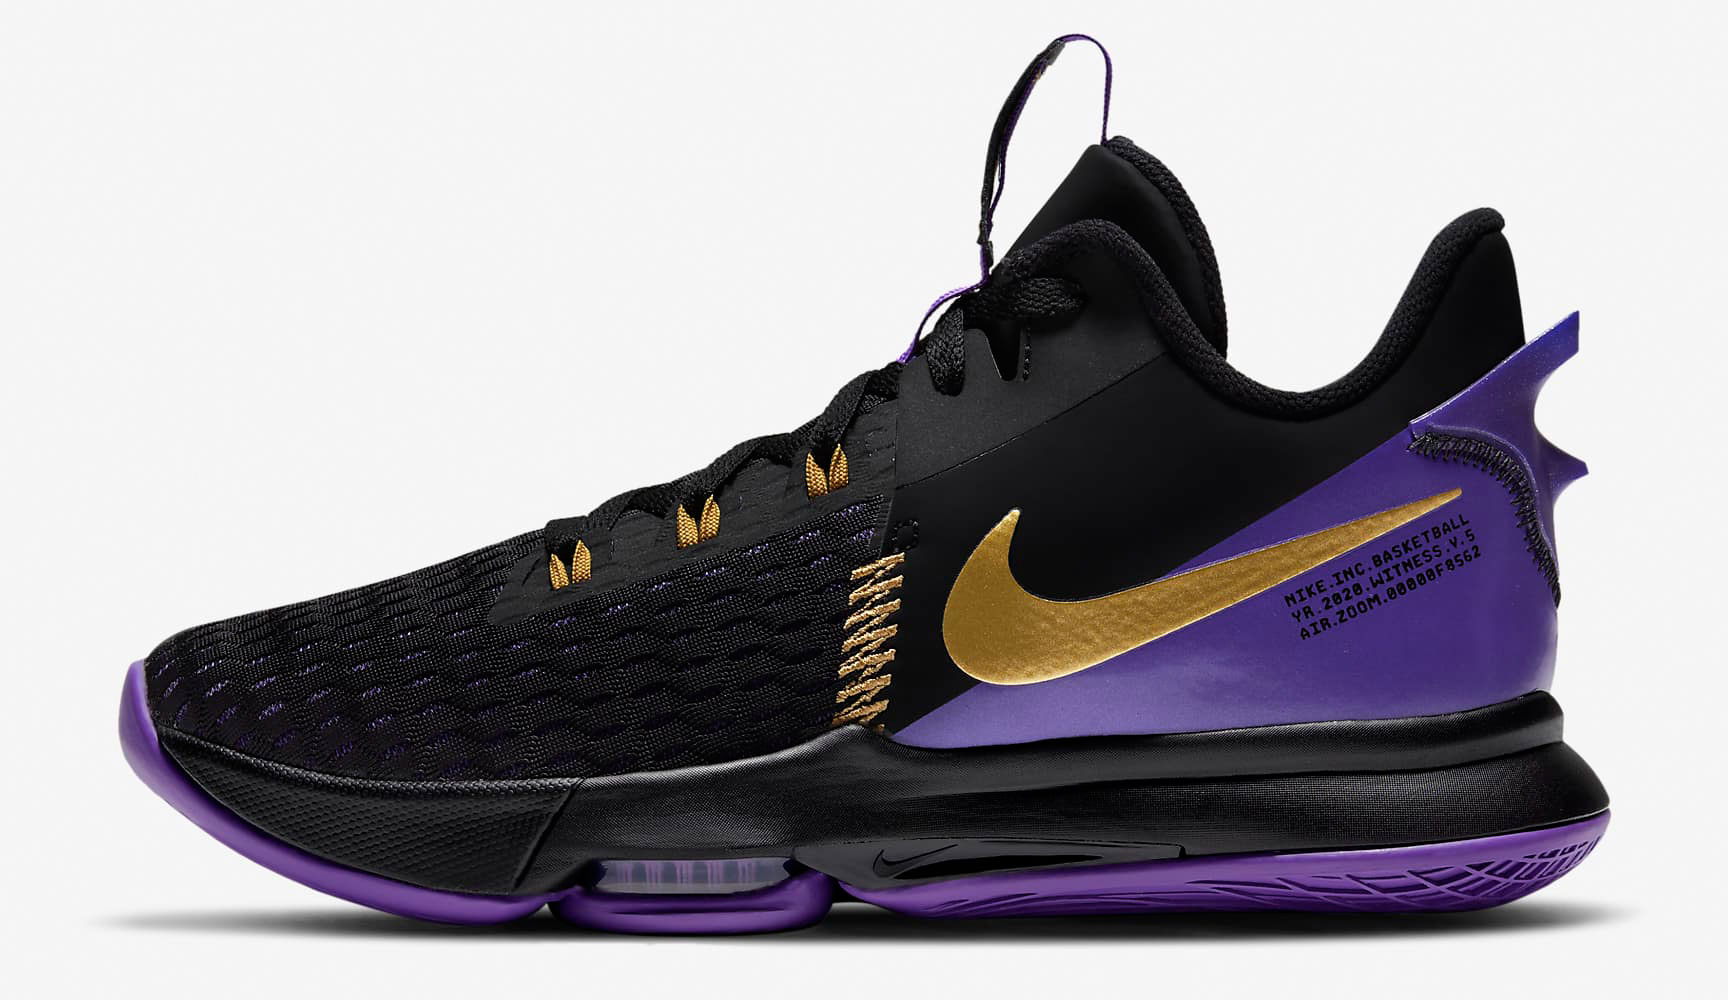 nike-lebron-witness-5-lakers-release-date